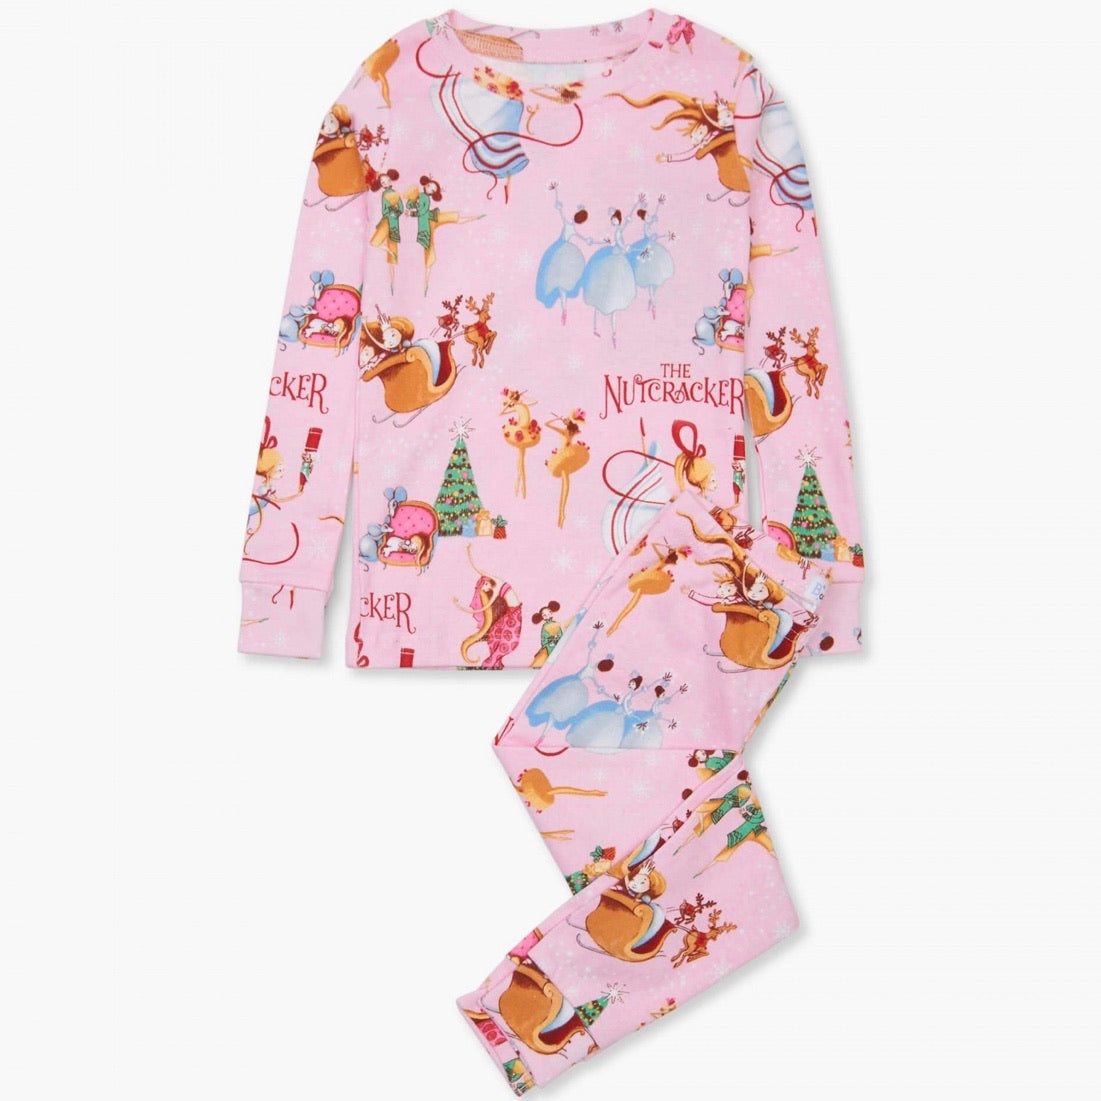 Nutcracker PJ/Book Set